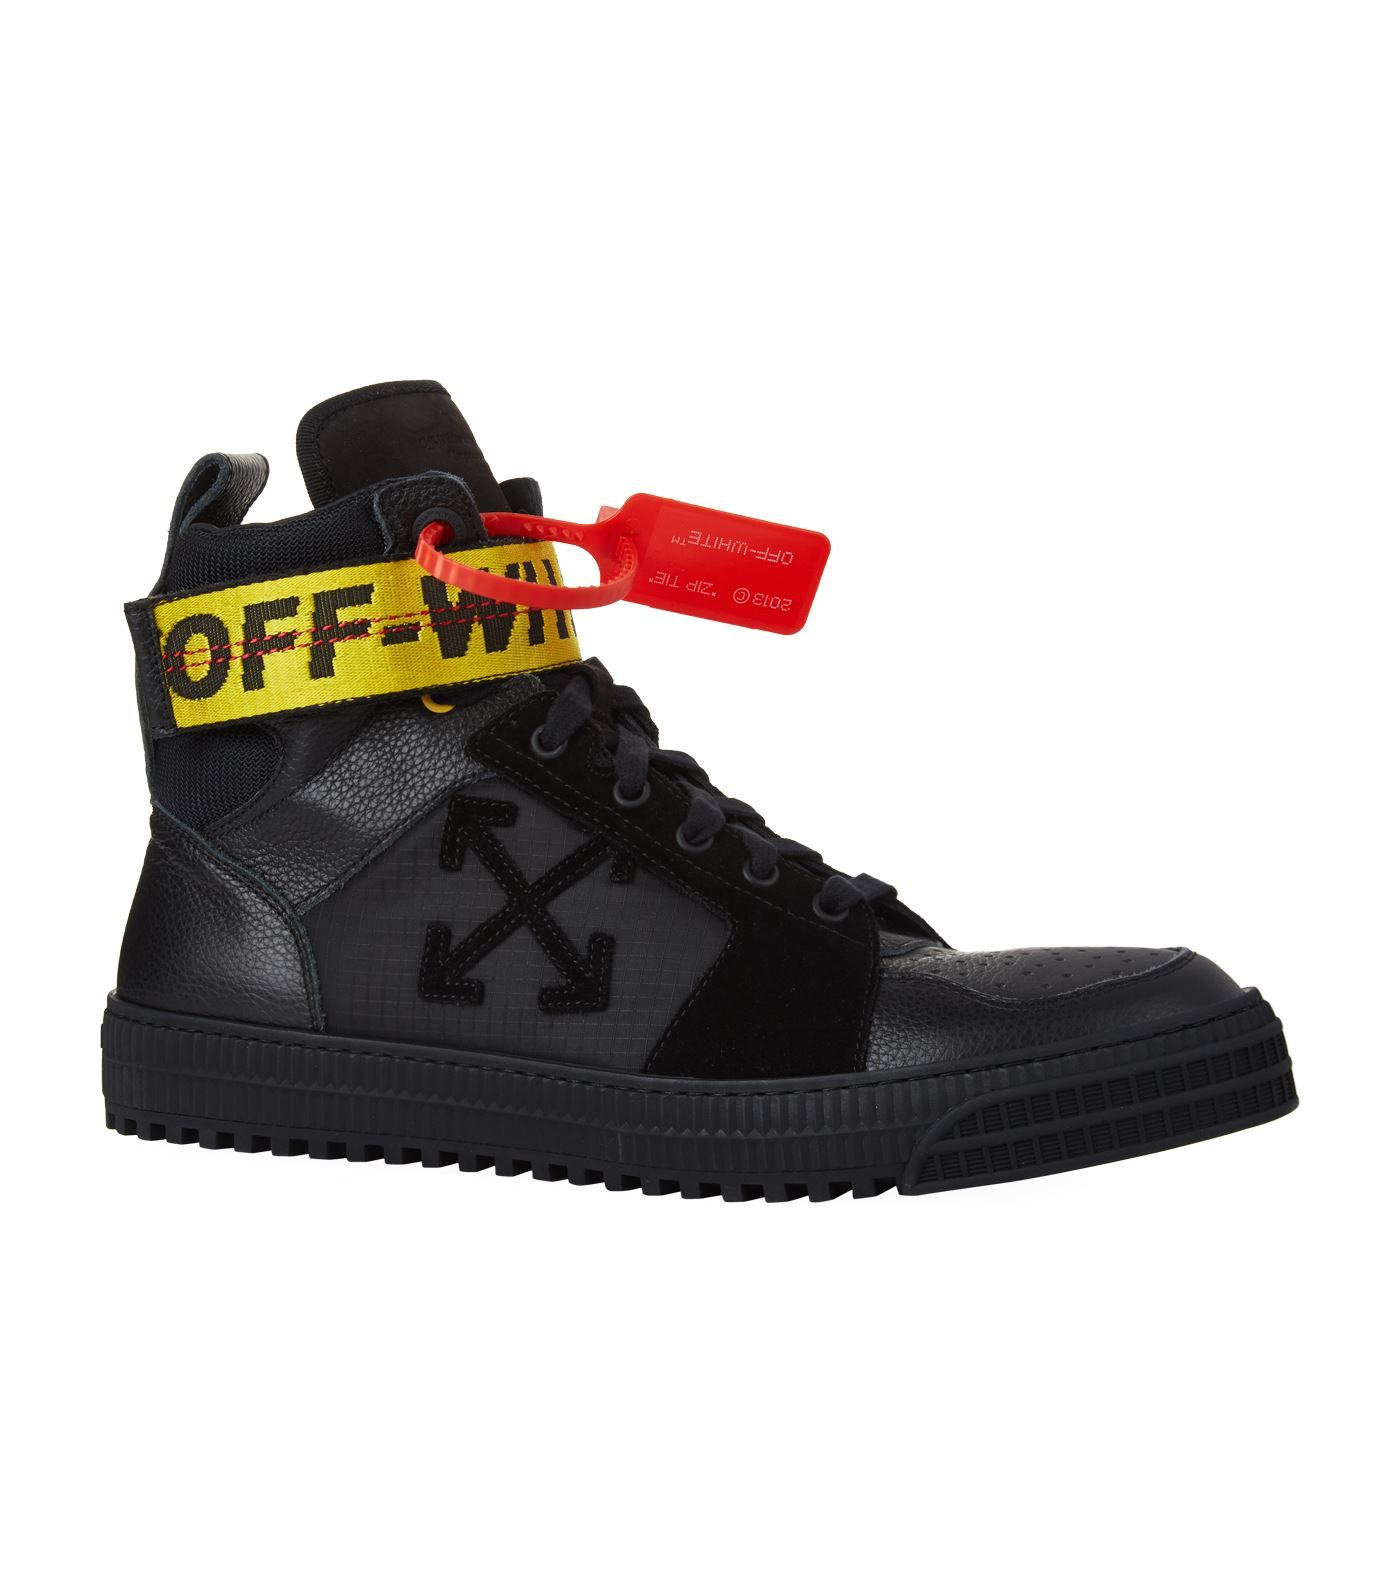 Off-white Industrial Full-grain Leather